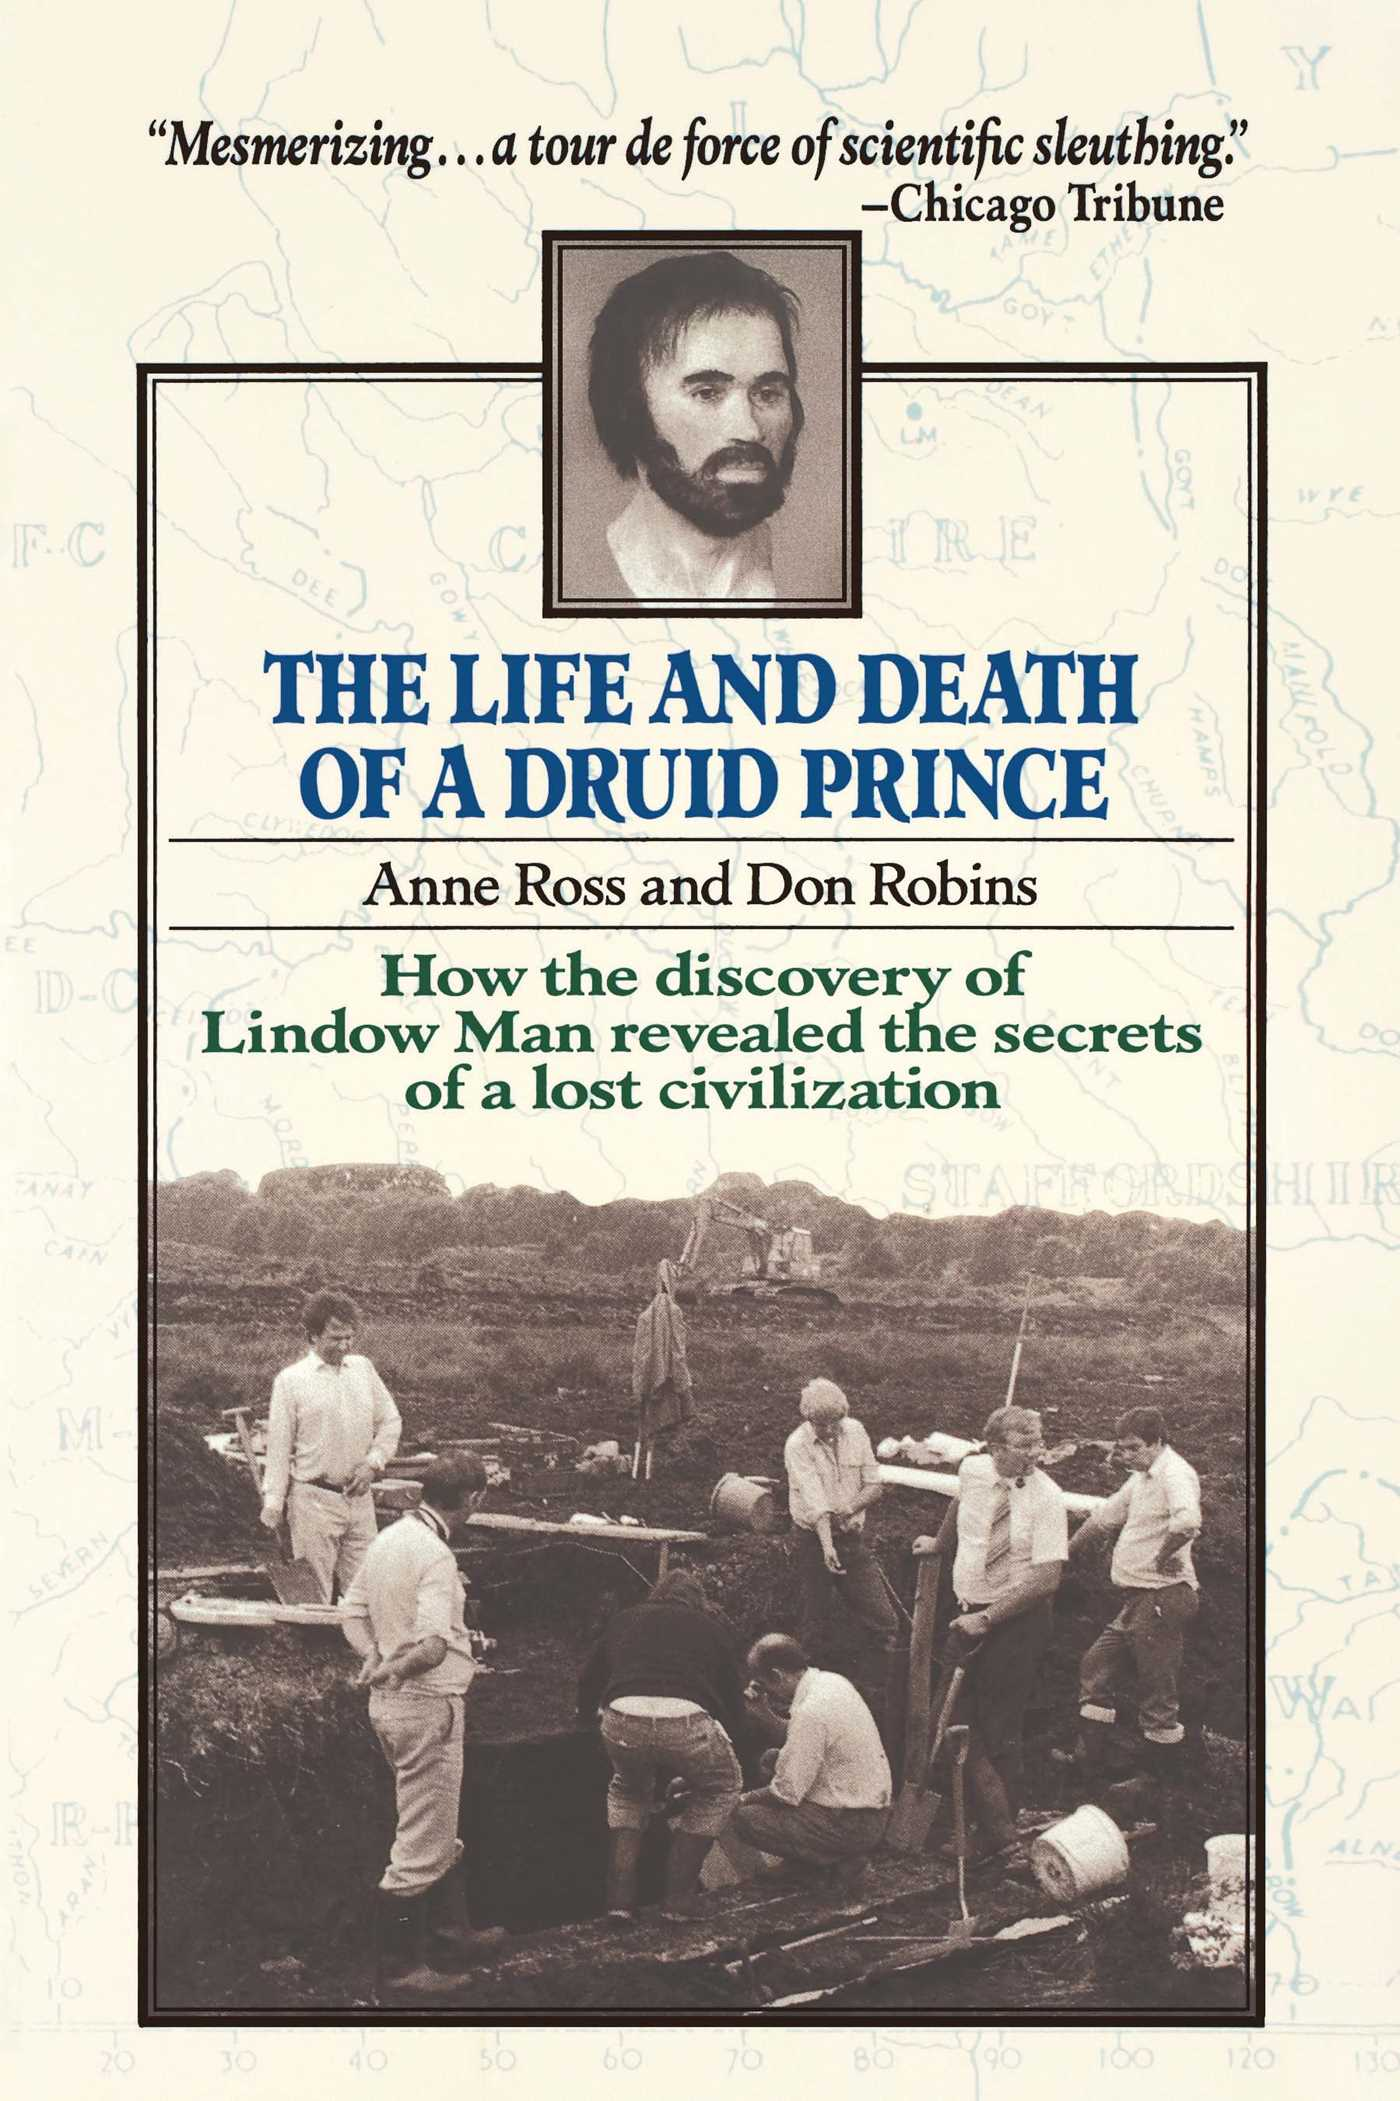 Life and death of a druid prince 9780671741228 hr